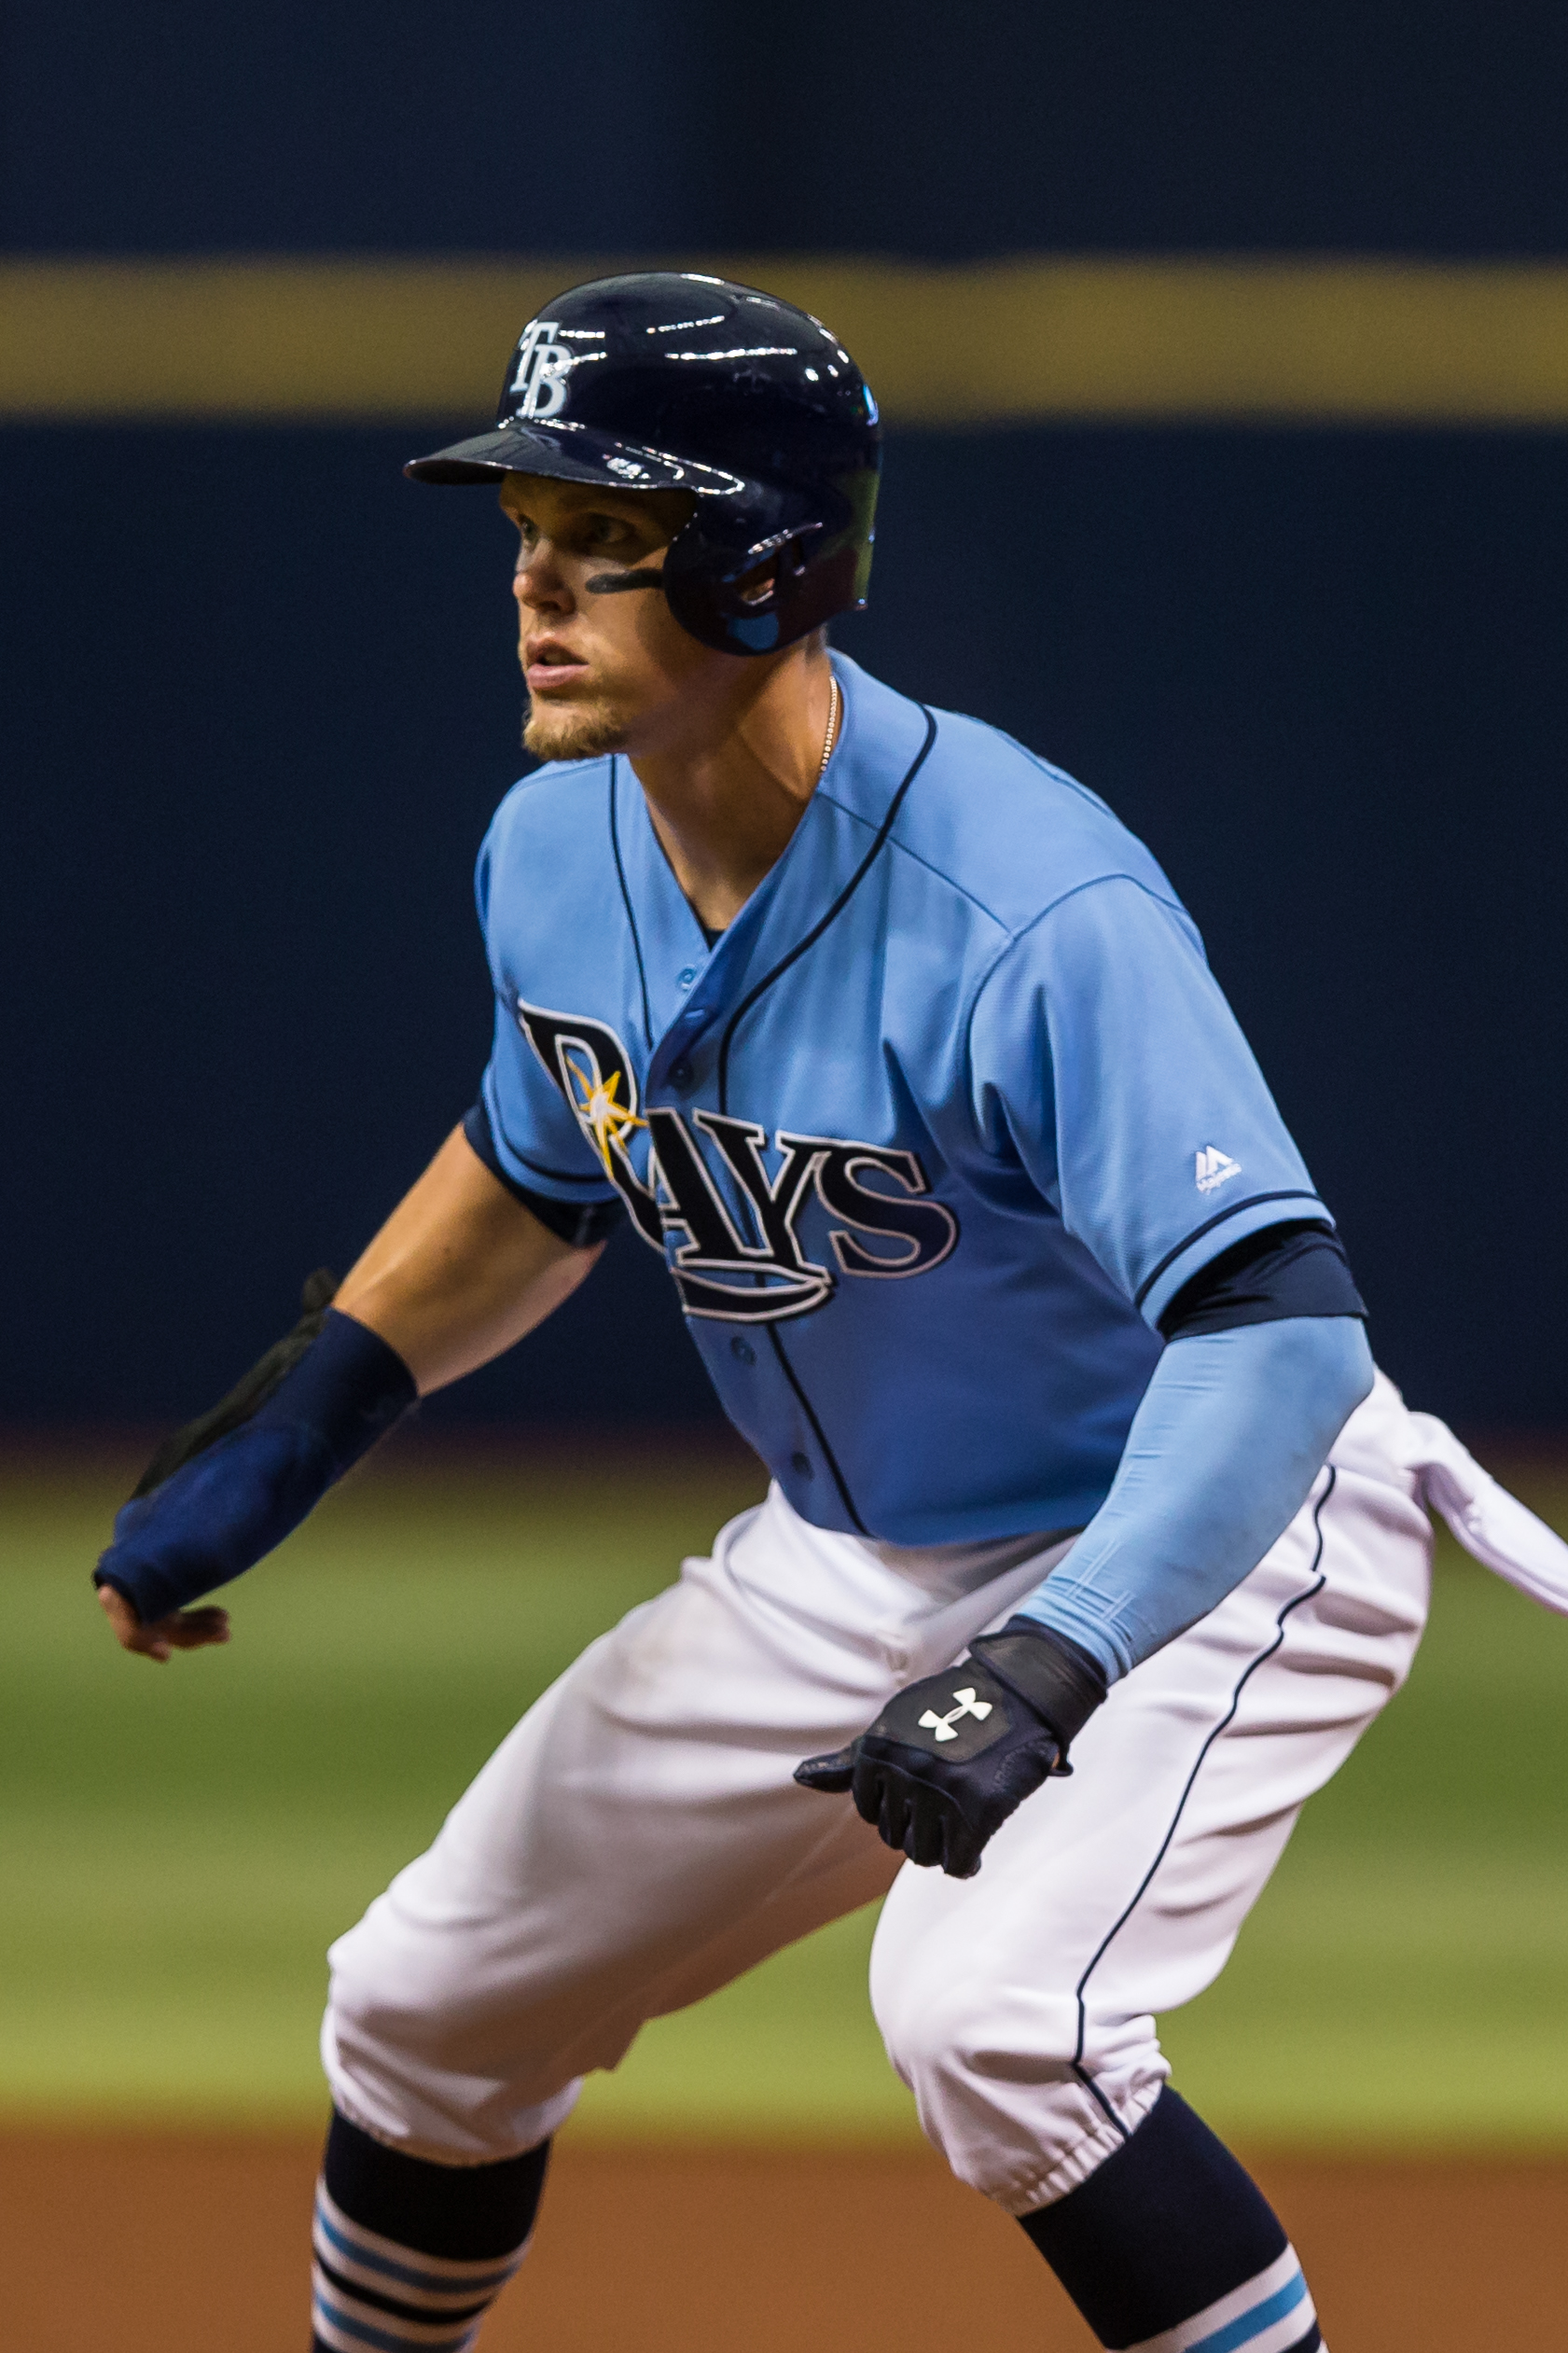 Guyer went one-for-three in the Rays' loss./